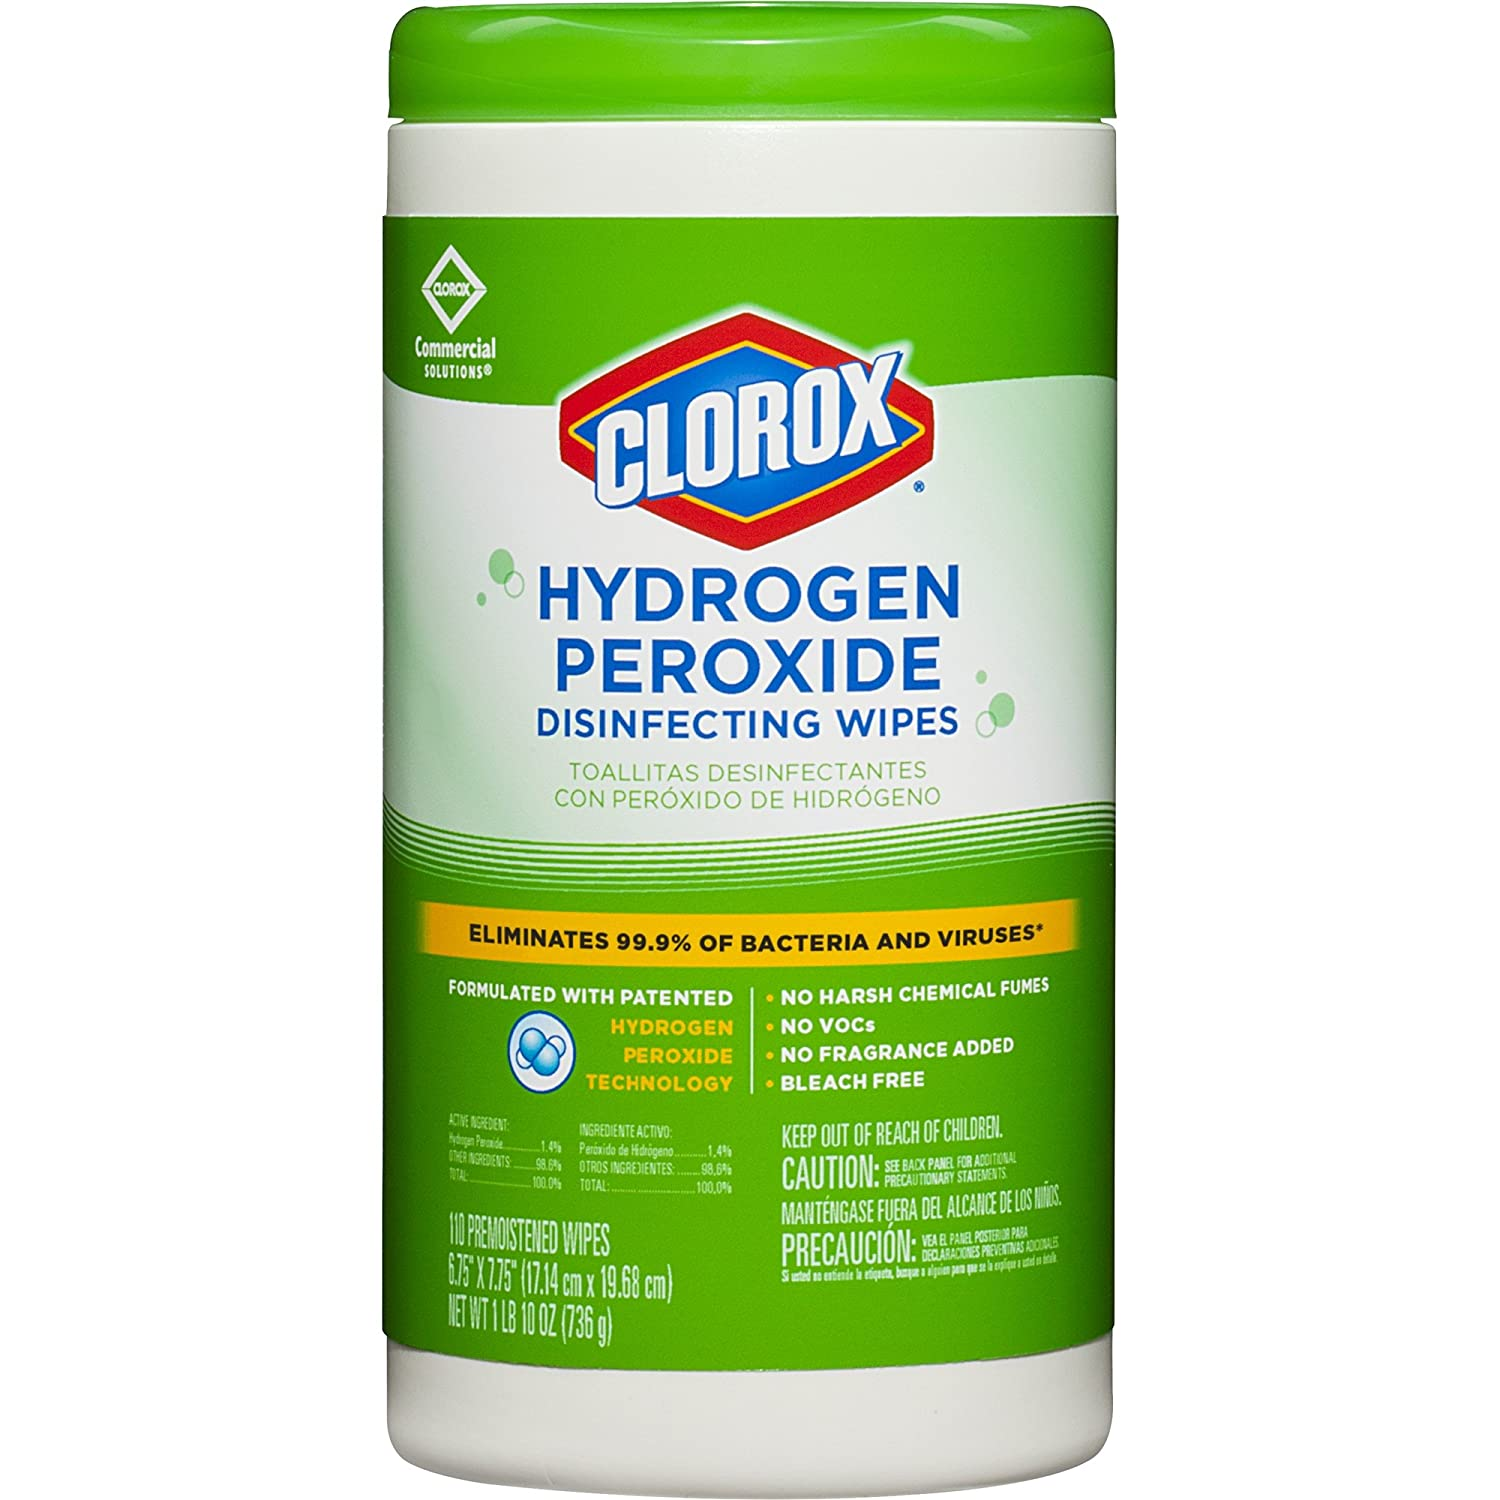 Clorox Commercial Solutions Hydrogen Peroxide Disinfecting Wipes, 110 Count Canister (30830) ((2 Pack) 110 Count)